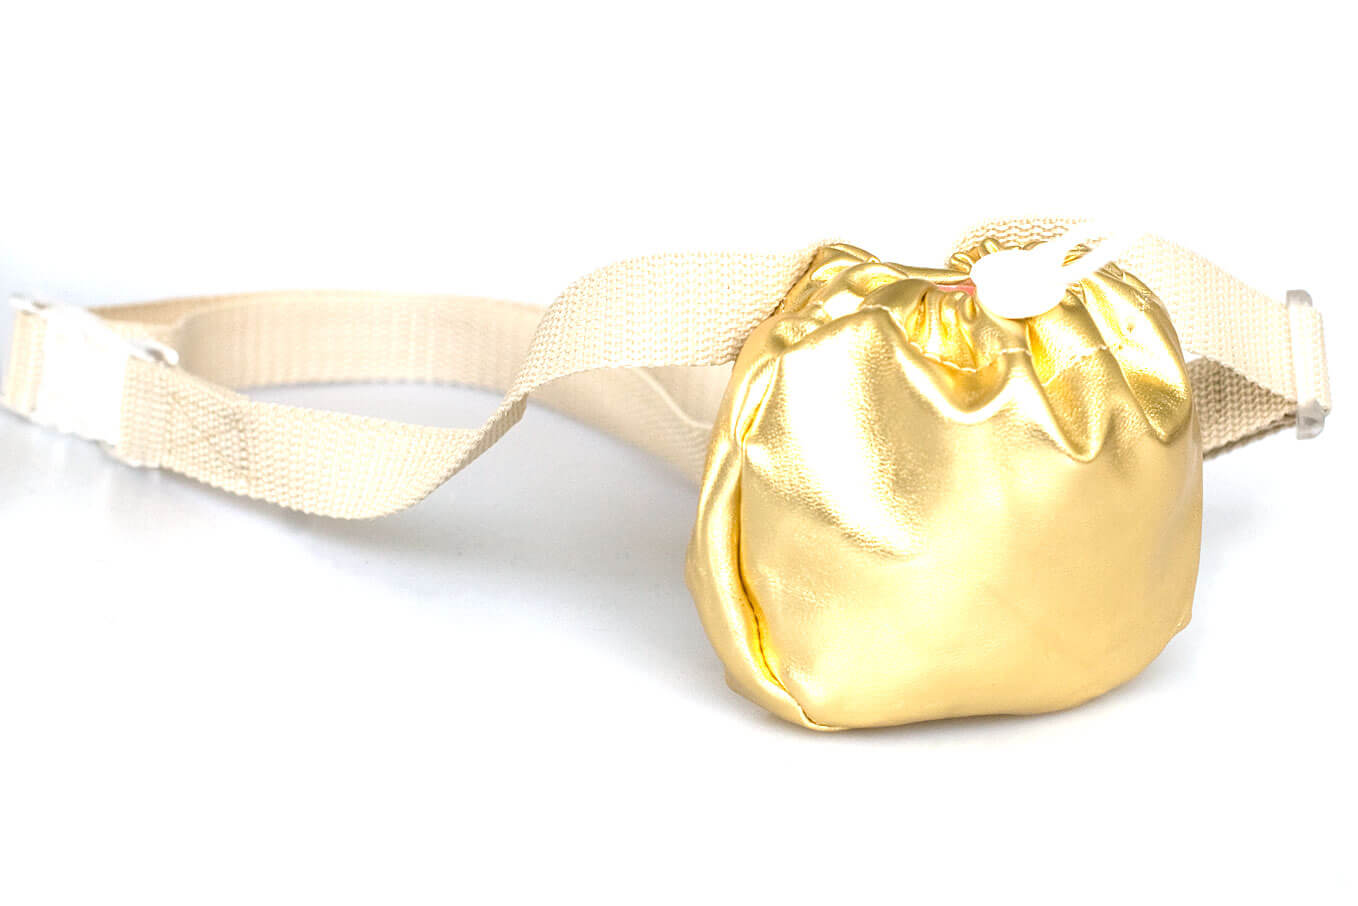 Dog training treat bag with adjustable belt in gold